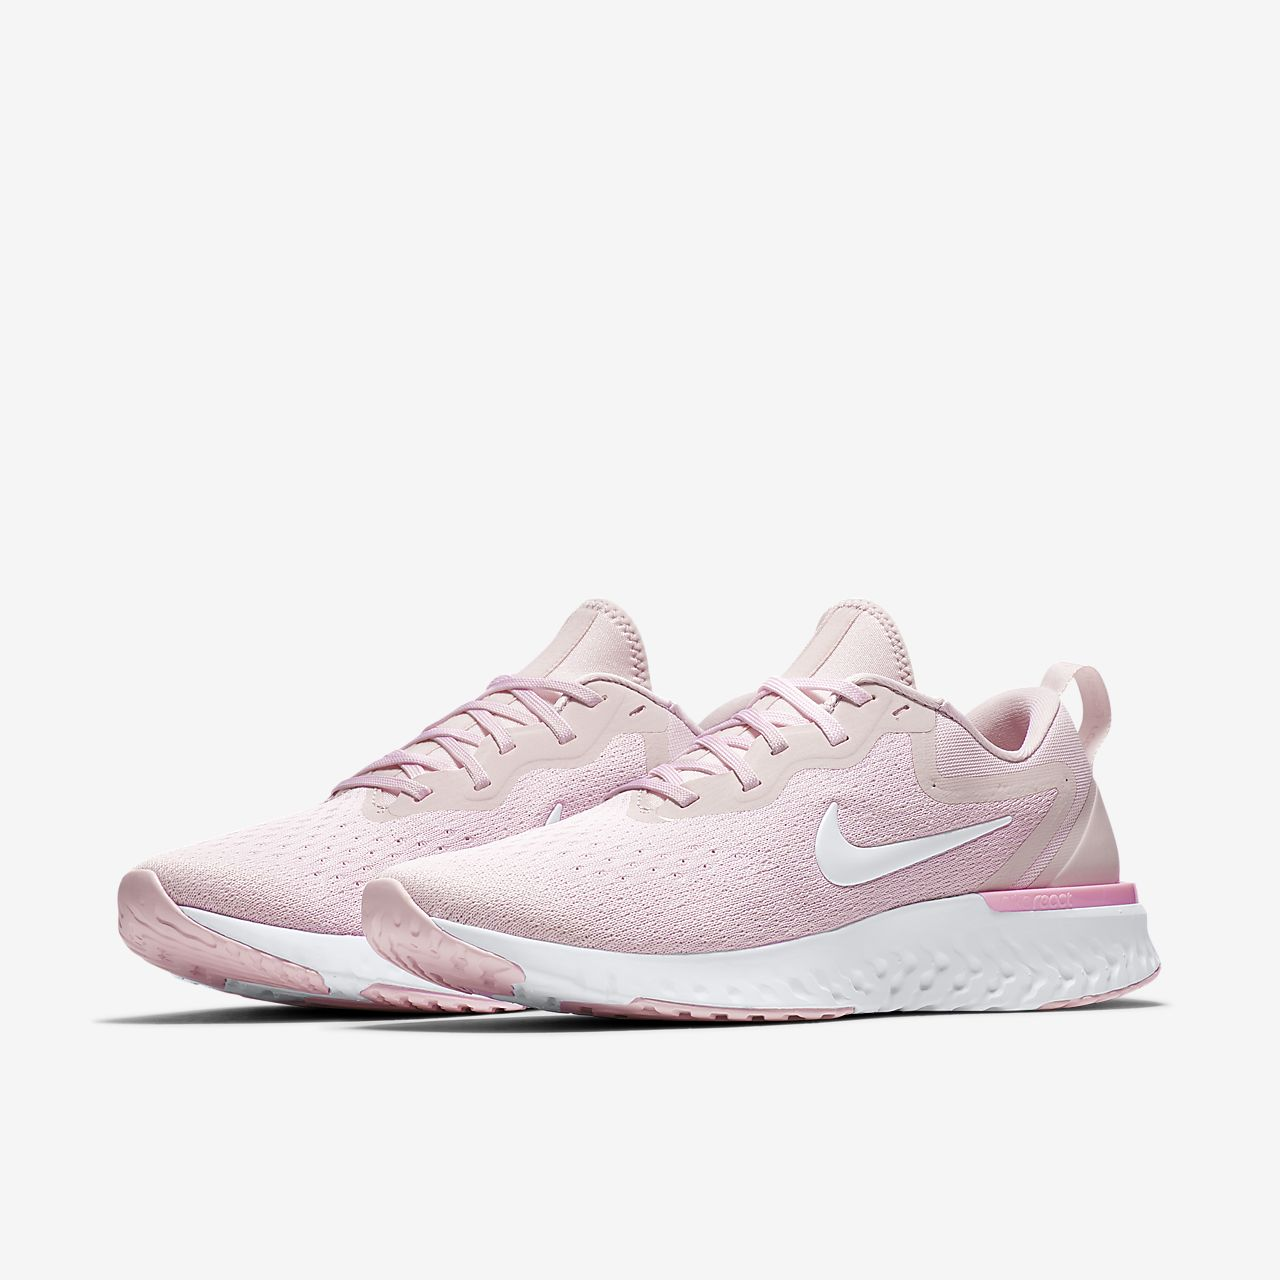 ... Nike Odyssey React Women's Running Shoe